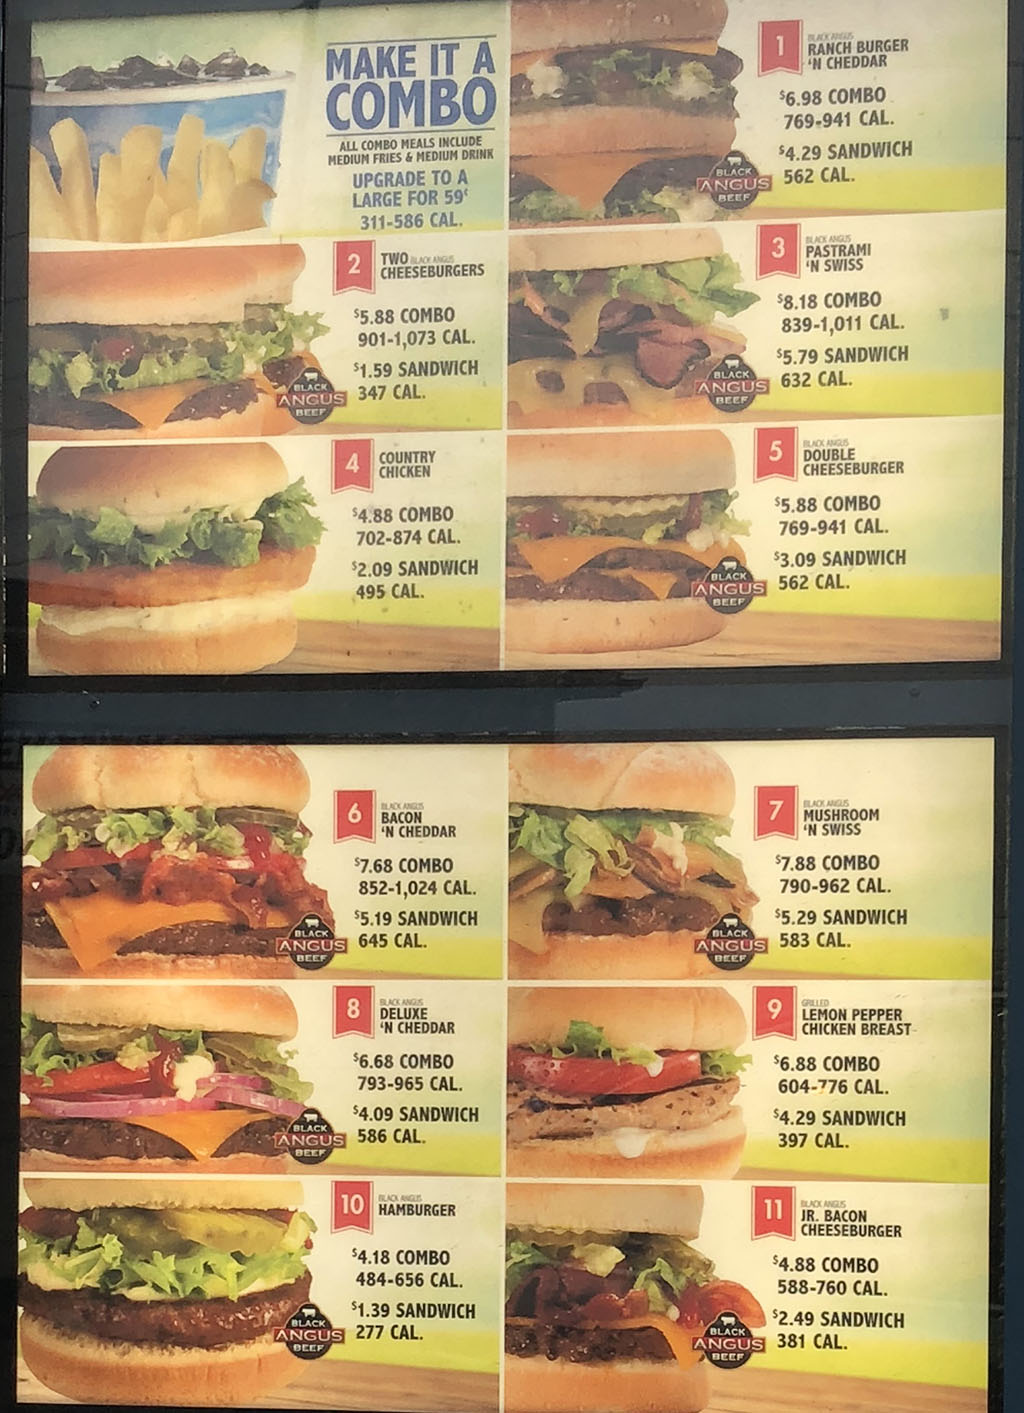 Arctic Circle menu - burgers, sandwiches, combos